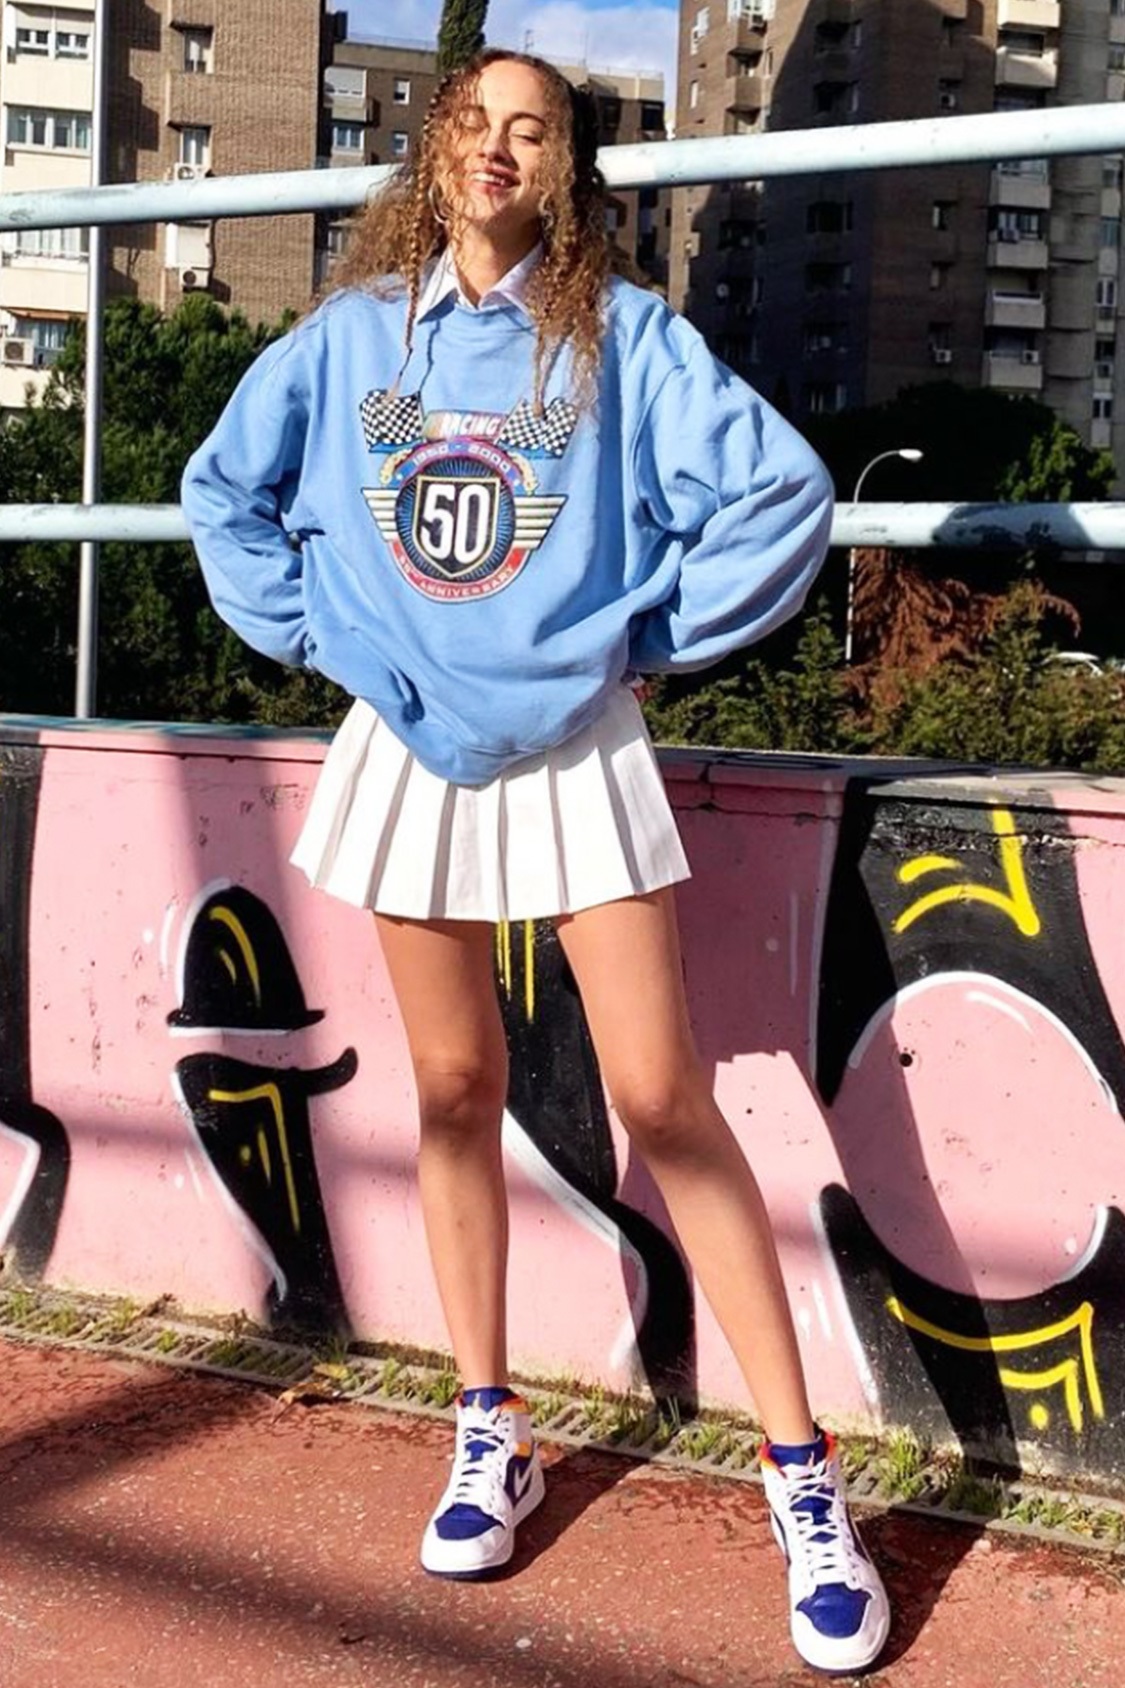 Pullover 50 racing